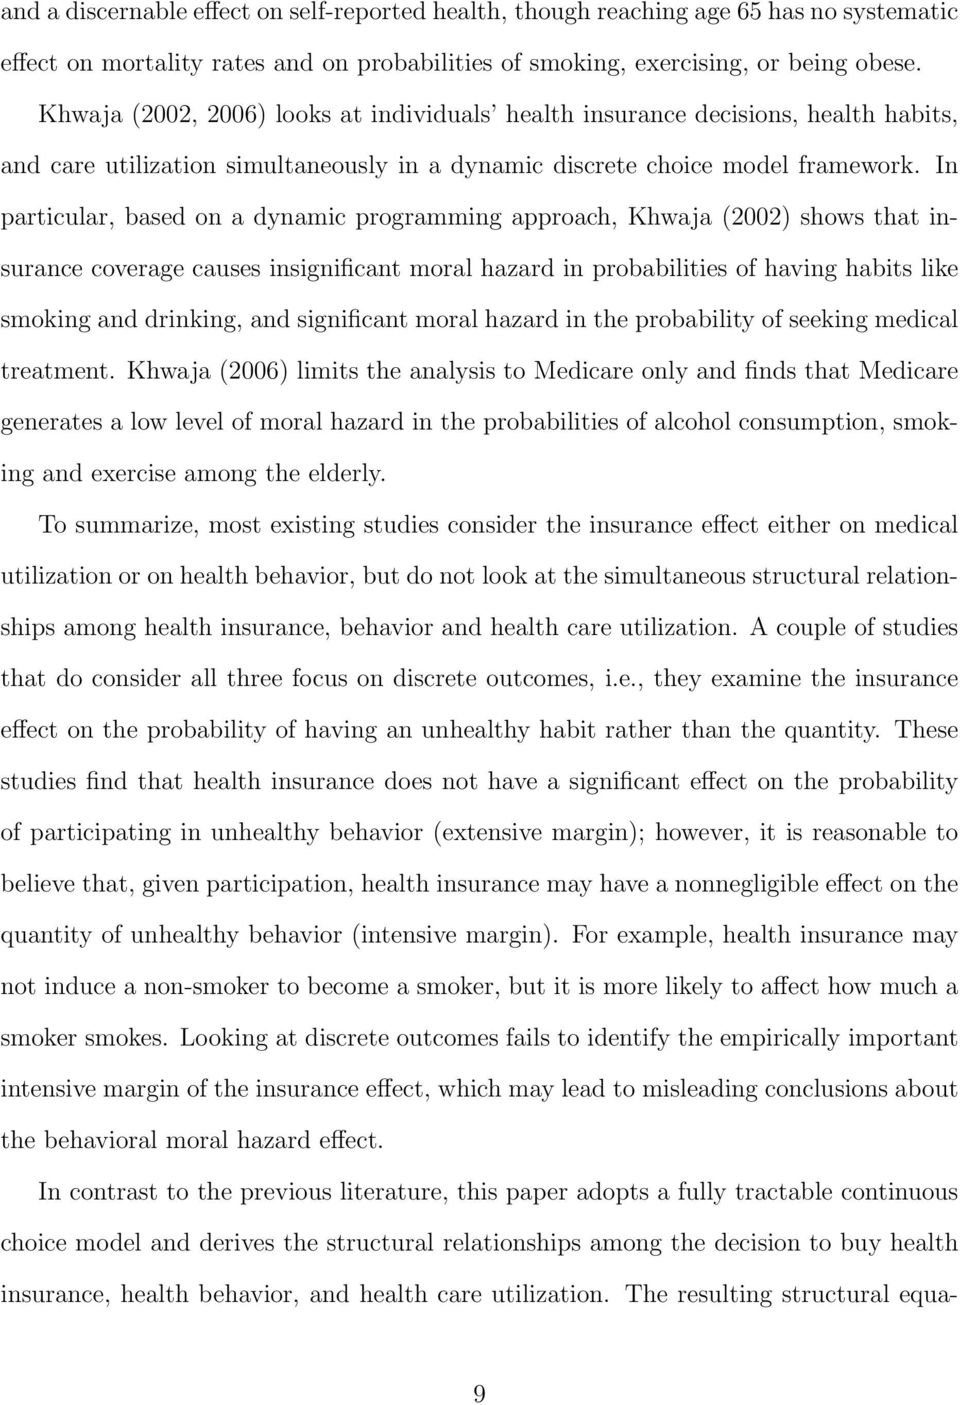 In particular, based on a dynamic programming approach, Khwaja (2002) shows that insurance coverage causes insignificant moral hazard in probabilities of having habits like smoking and drinking, and